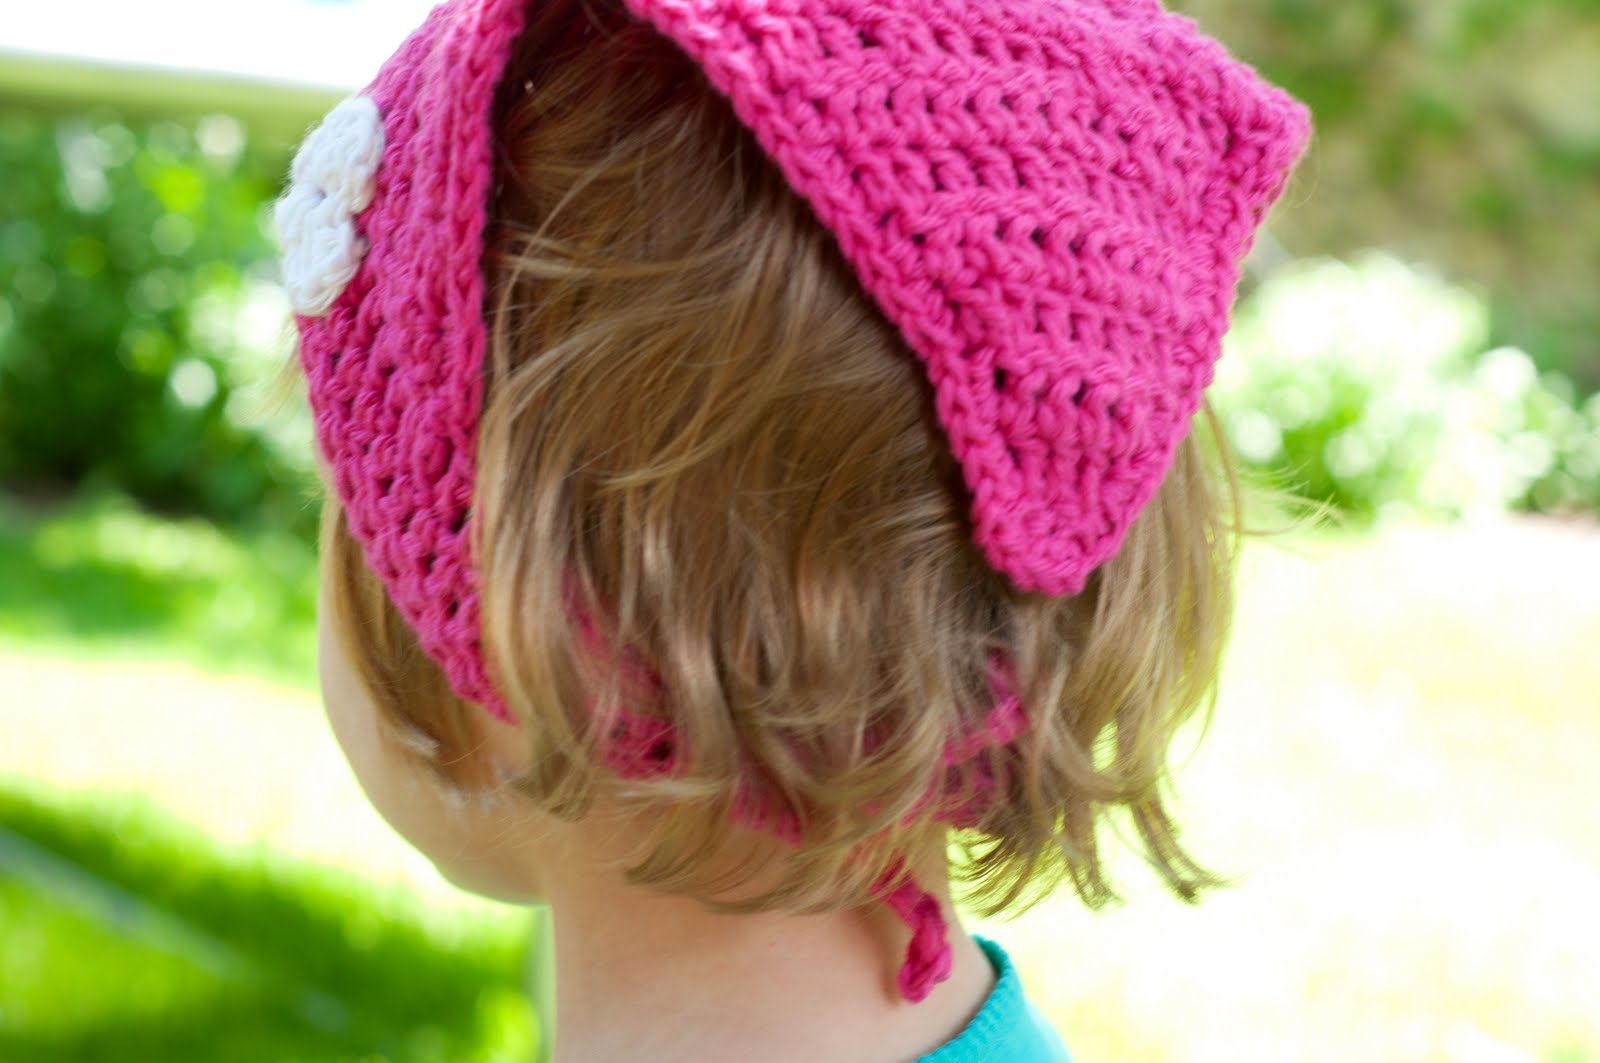 Crochet Hair Kerchief Pattern : Aesthetic Nest: Crochet: Simple Kerchief (Tutorial)